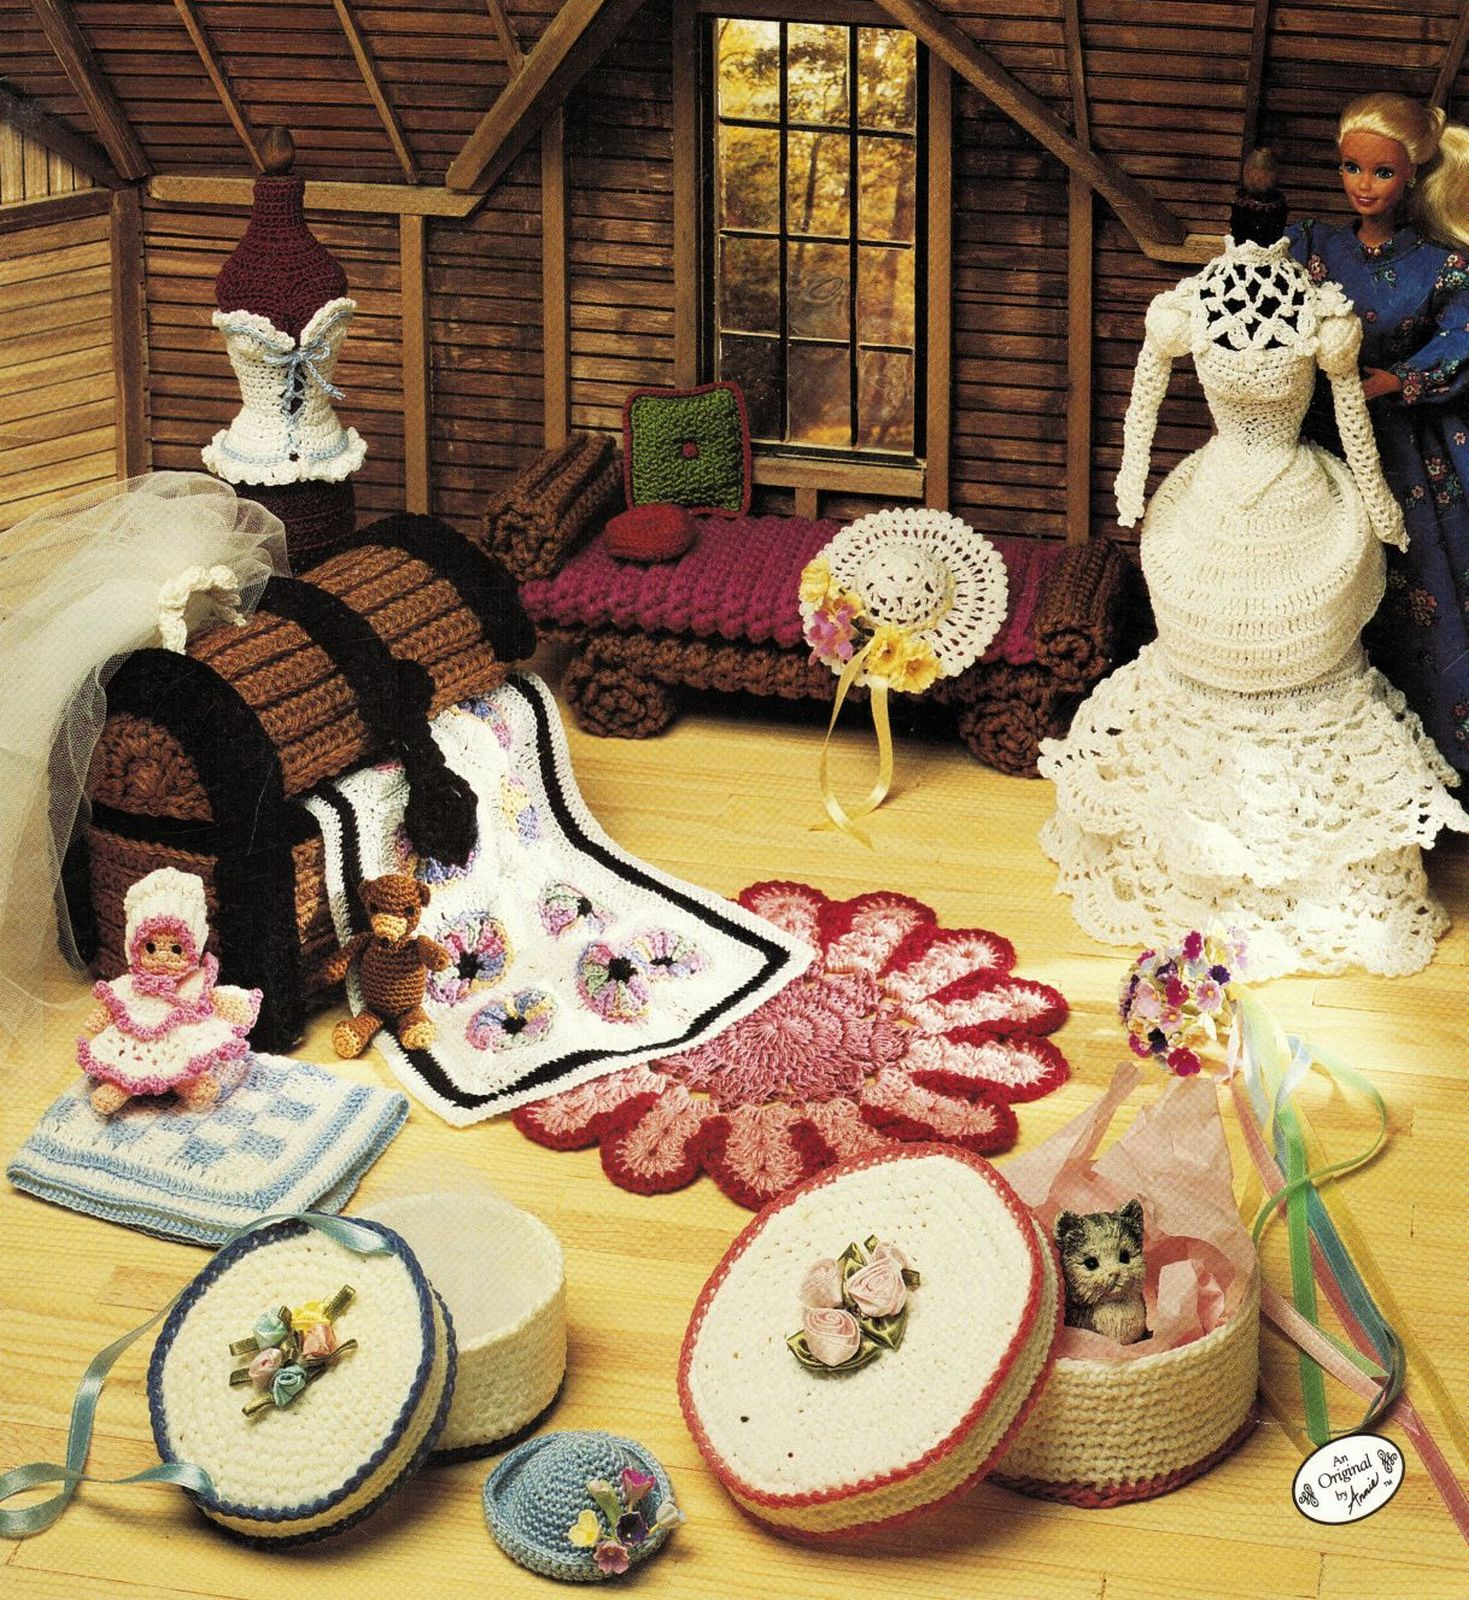 Primary image for Annies Attic Fashion Doll Furniture DayBed Trunk Bride Mannequin Crochet Pattern